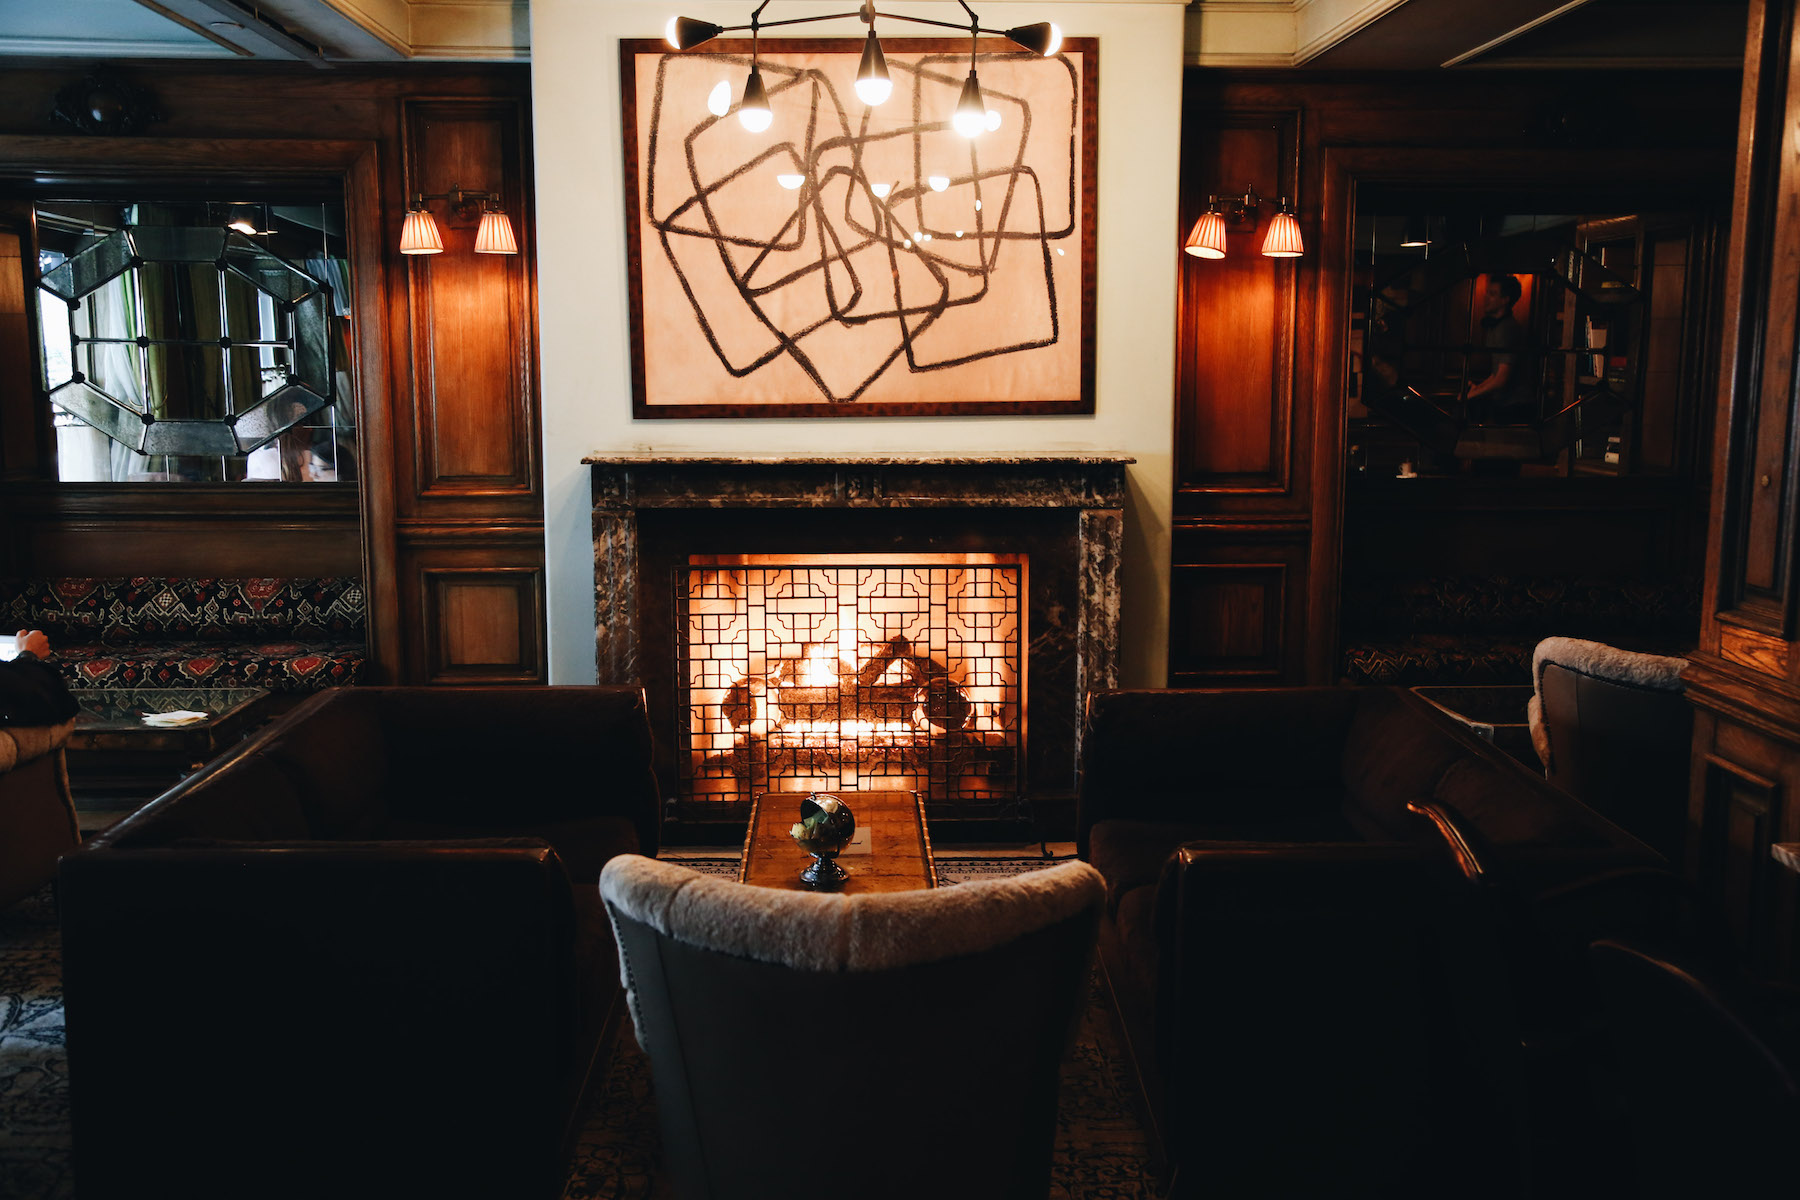 - If you can't find me at home, in my neighborhood, or out and about exploring, there's good chance, you'll find me in the lobby of the Marlton Hotel. It's a great spot to work during the week or have a meeting, or even just stop to grab a drink with a friend. My favorite part is the fireplace, which is especially welcome on a cold winter day. Also, make sure to order your coffee or tea with their almond milk, which is made fresh in-house every day.